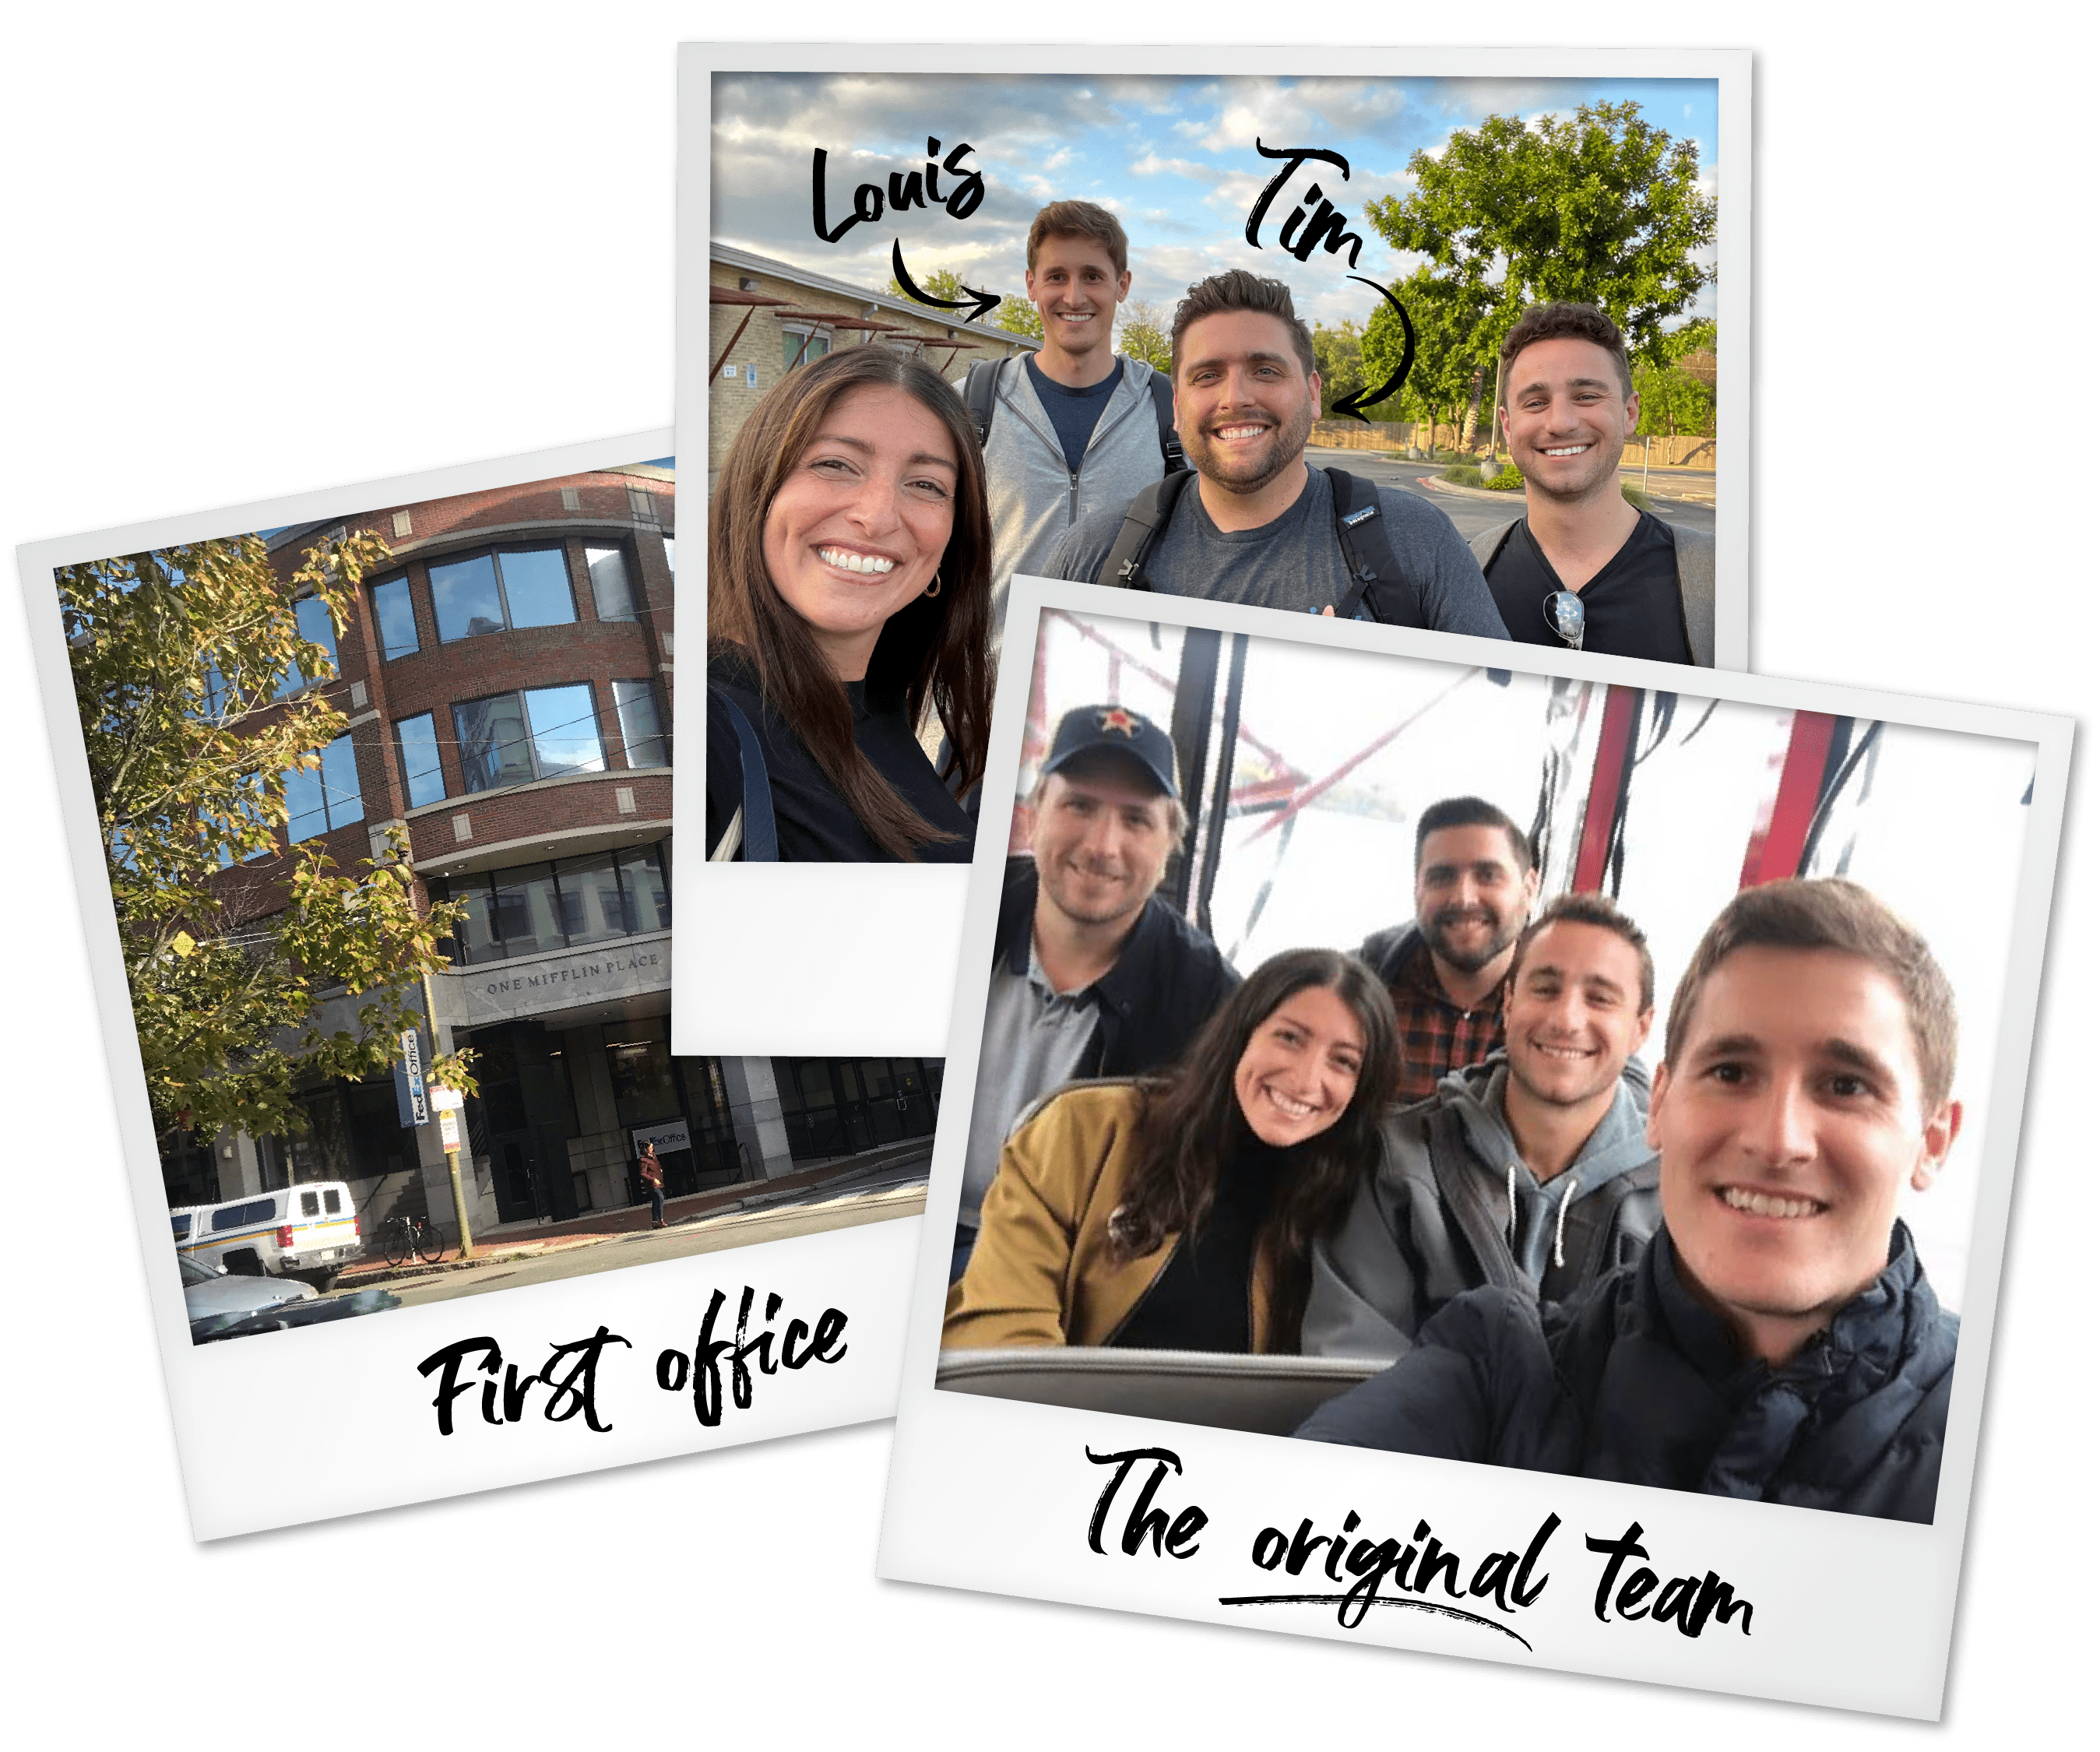 Polaroid photos of the first UpEquity office and original team